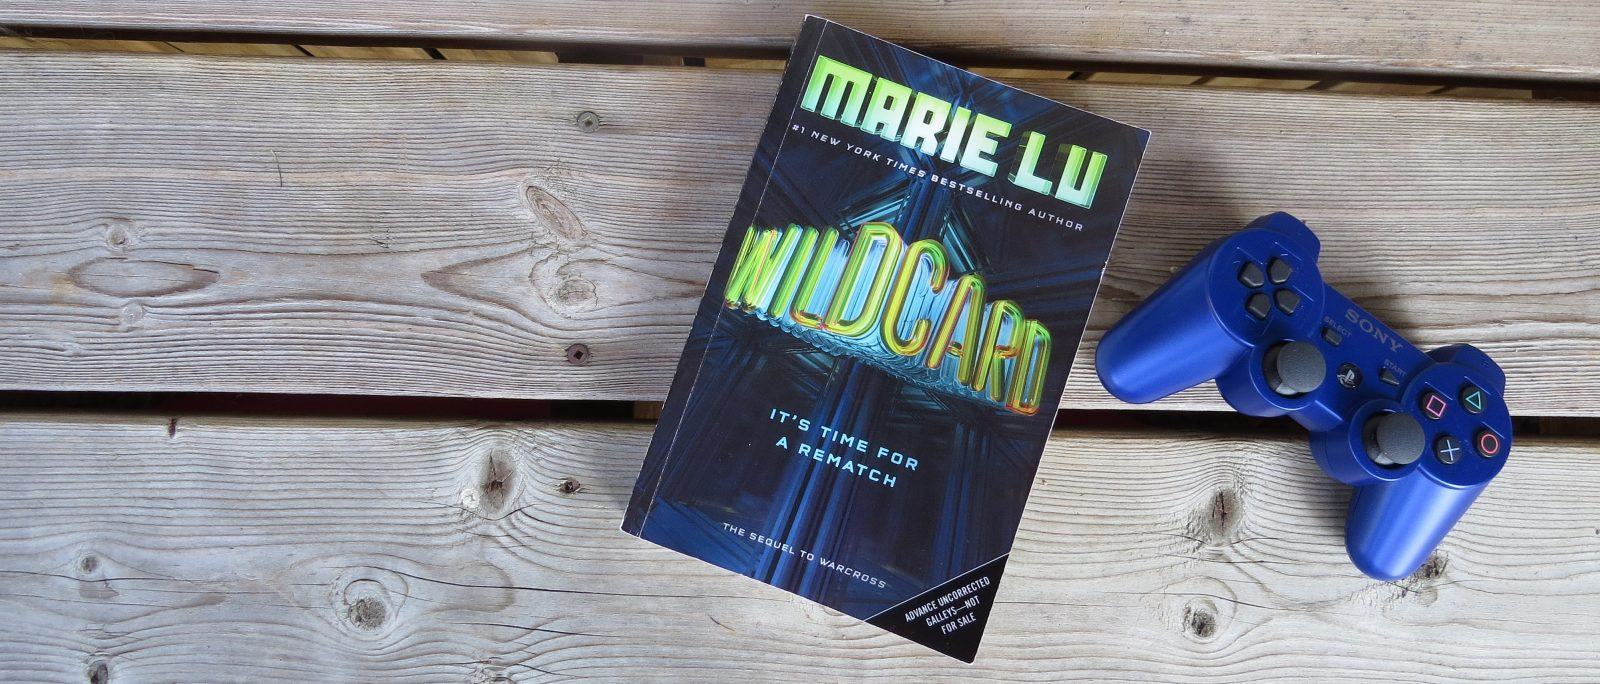 Review | Wildcard by Marie Lu